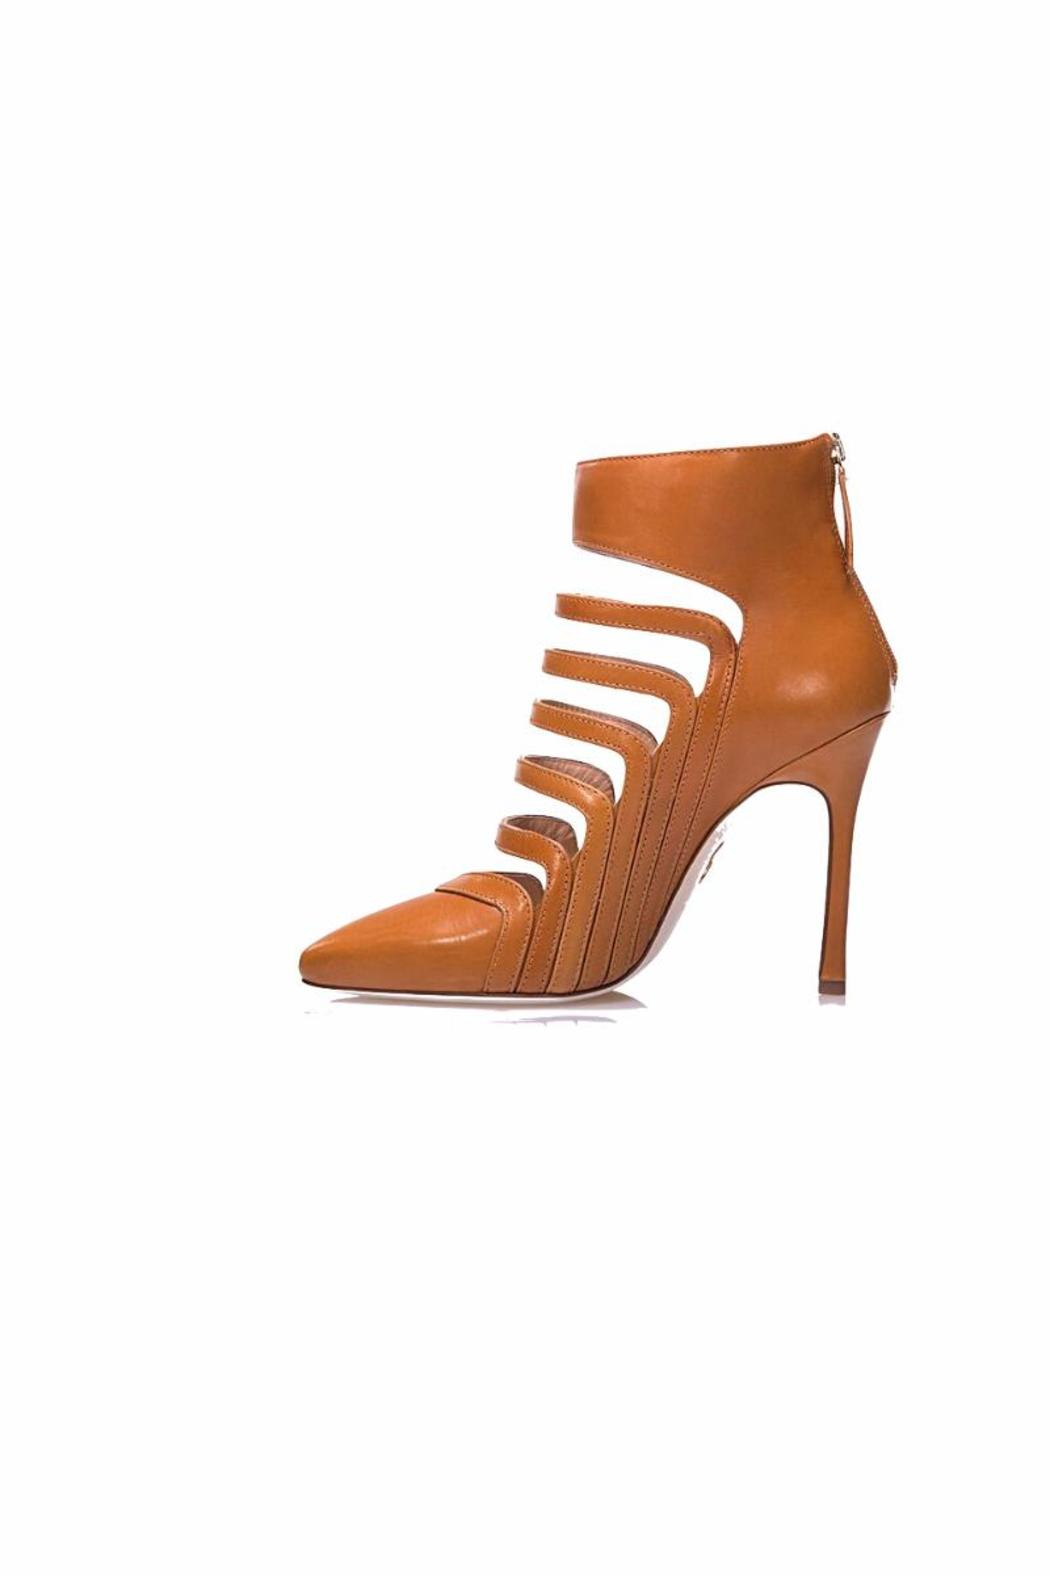 Cheslea Paris Cage Heels - Front Cropped Image